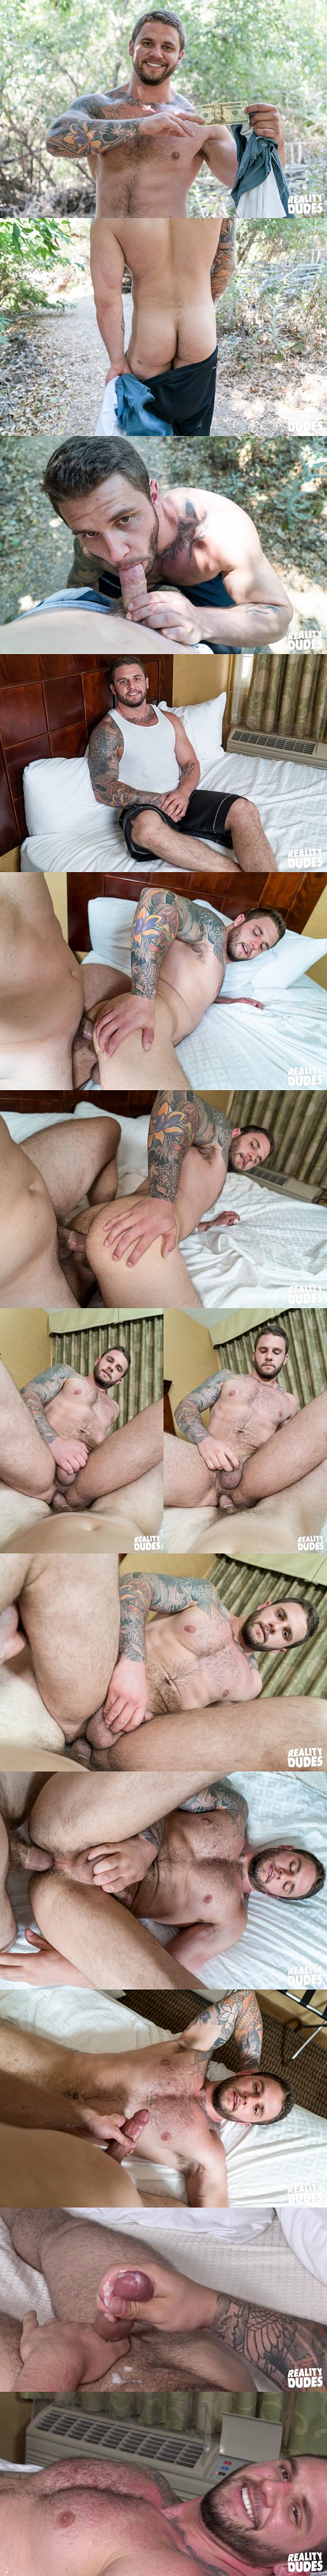 Hot tattooed muscle hunk Rocke gets his virgin ass popped up at Realitydudes 02